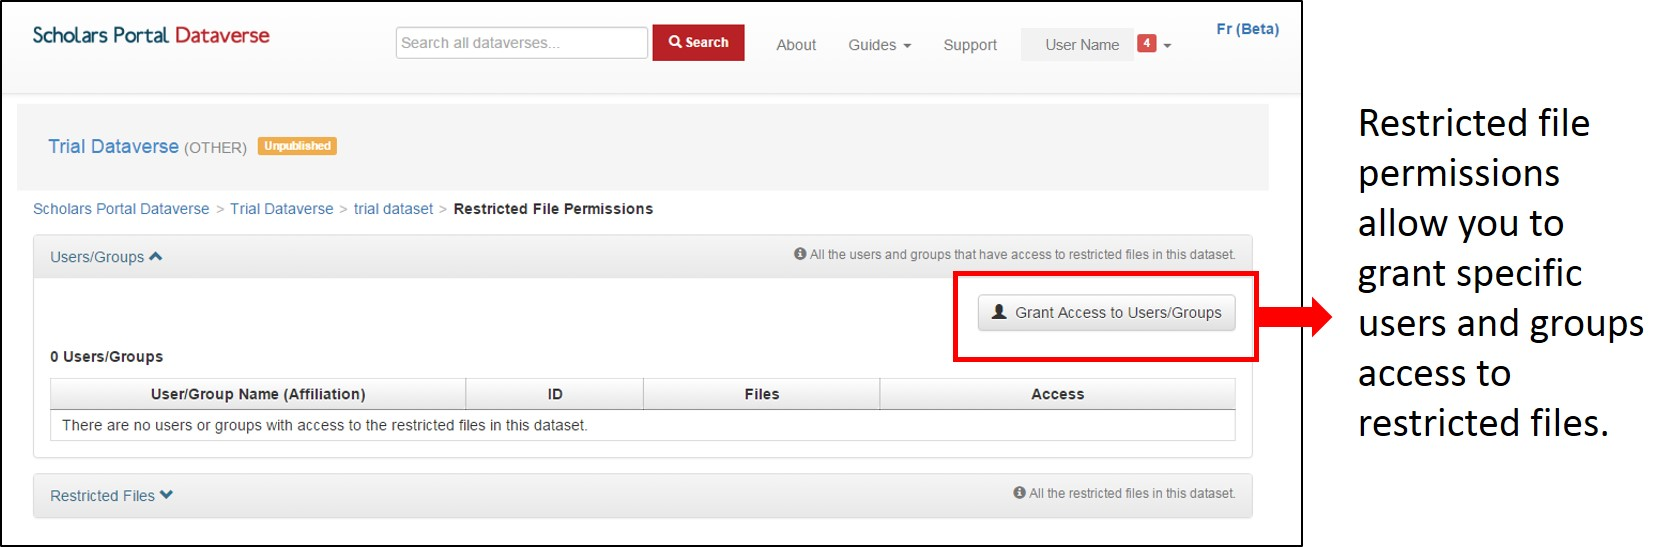 Restricted file permissions allow you to grant specific users and groups access to restricted files.